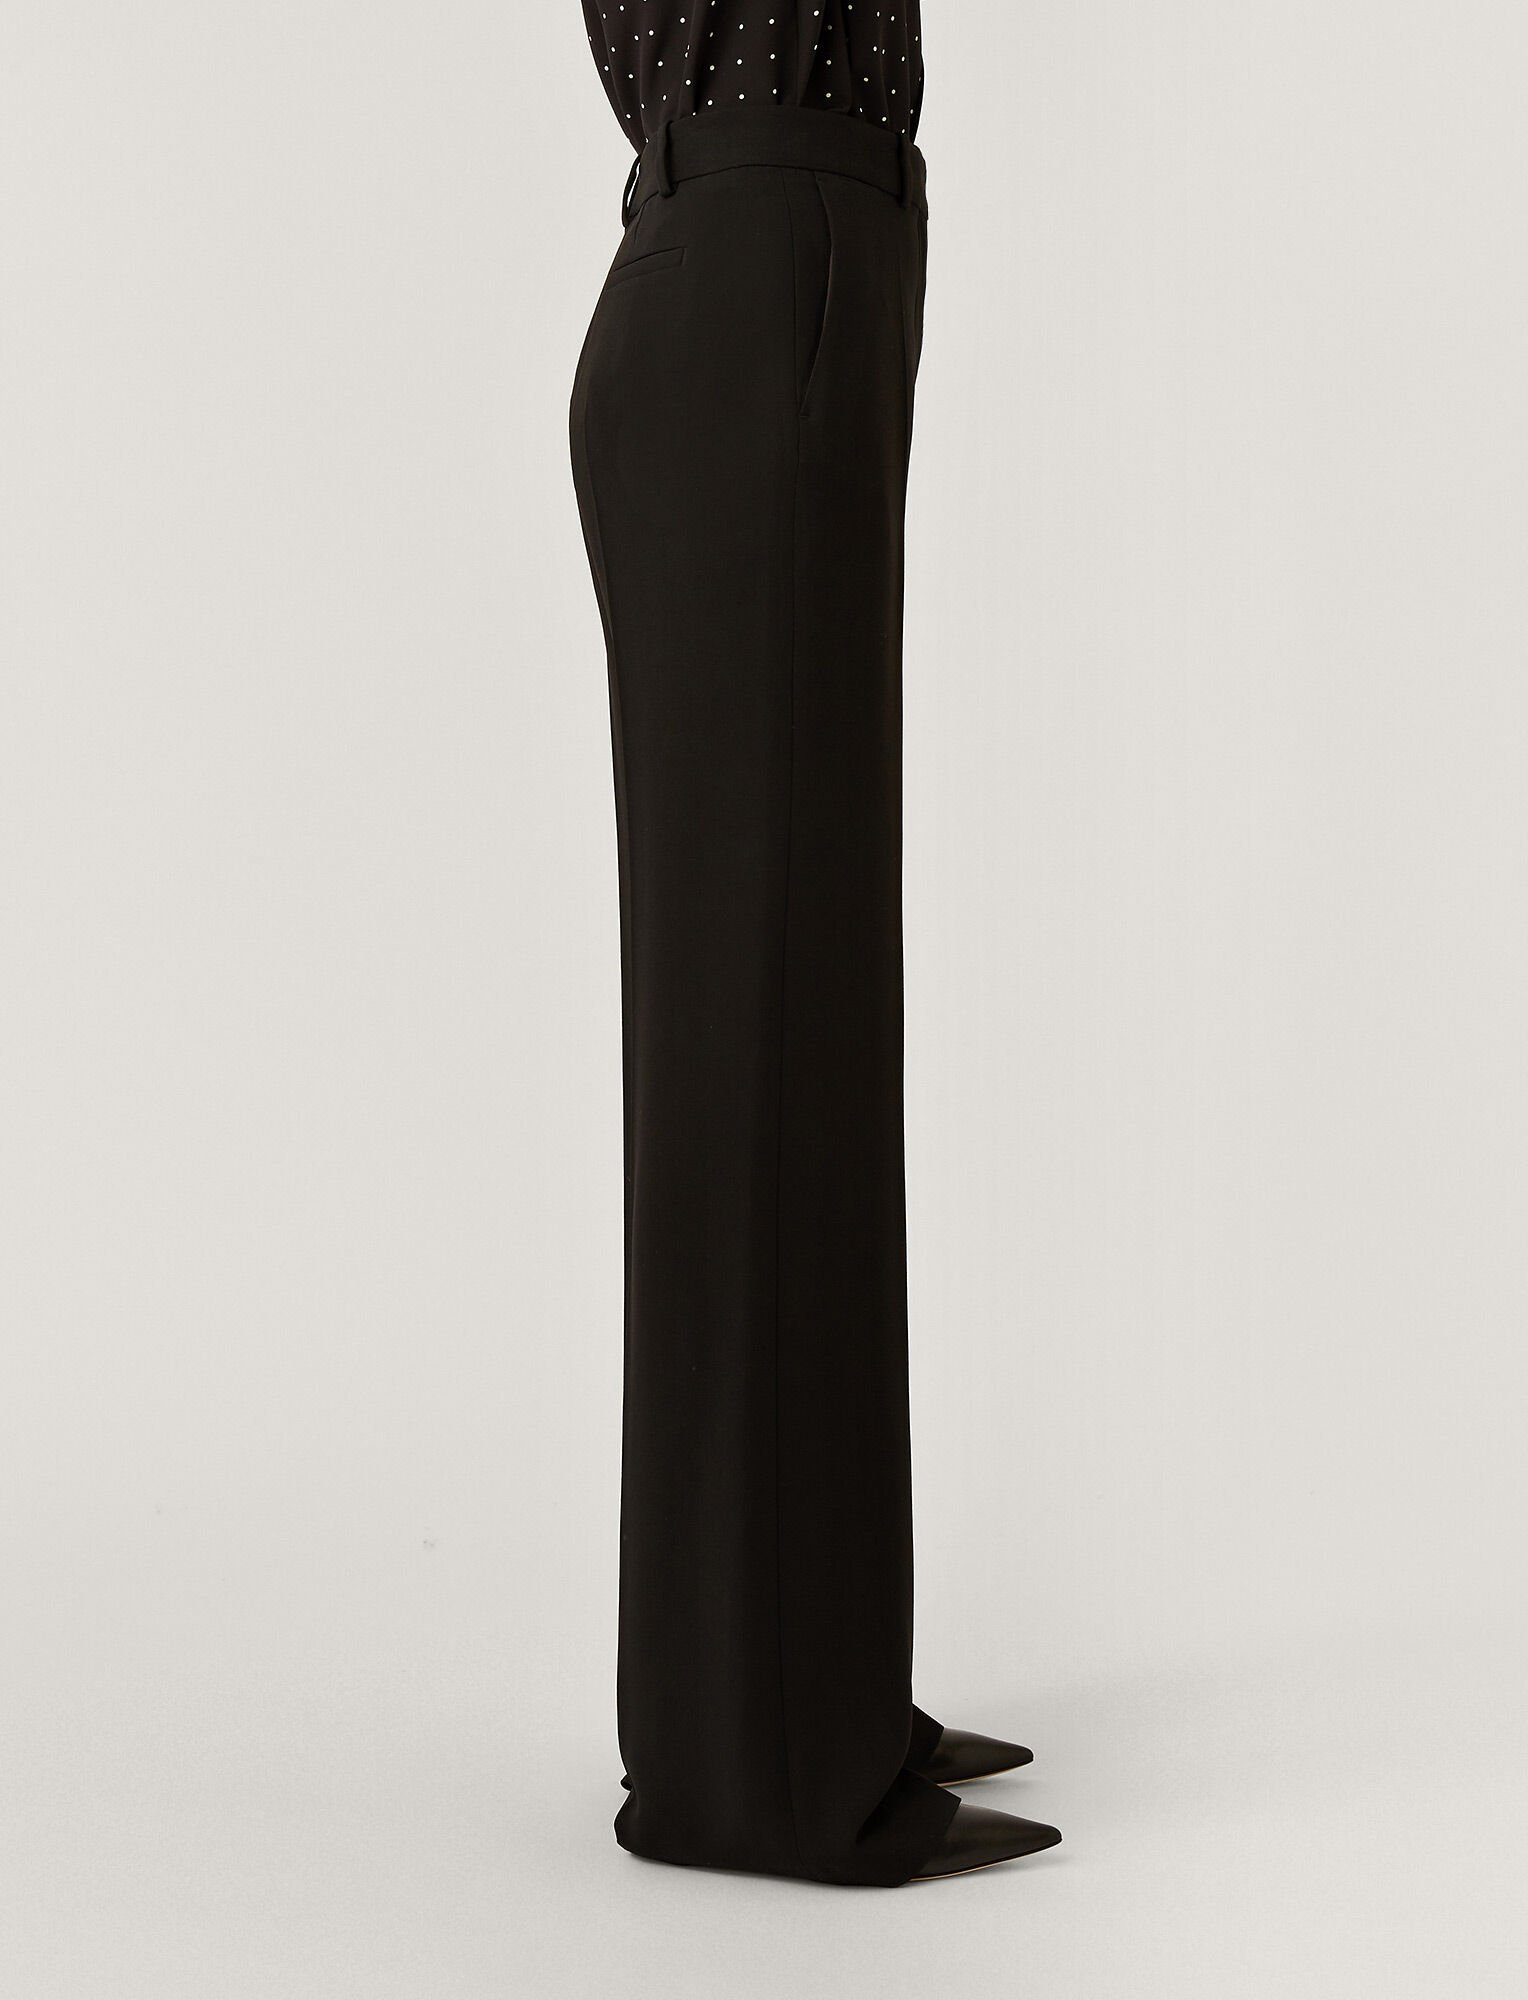 Joseph, New Cady Morissey Trousers, in BLACK